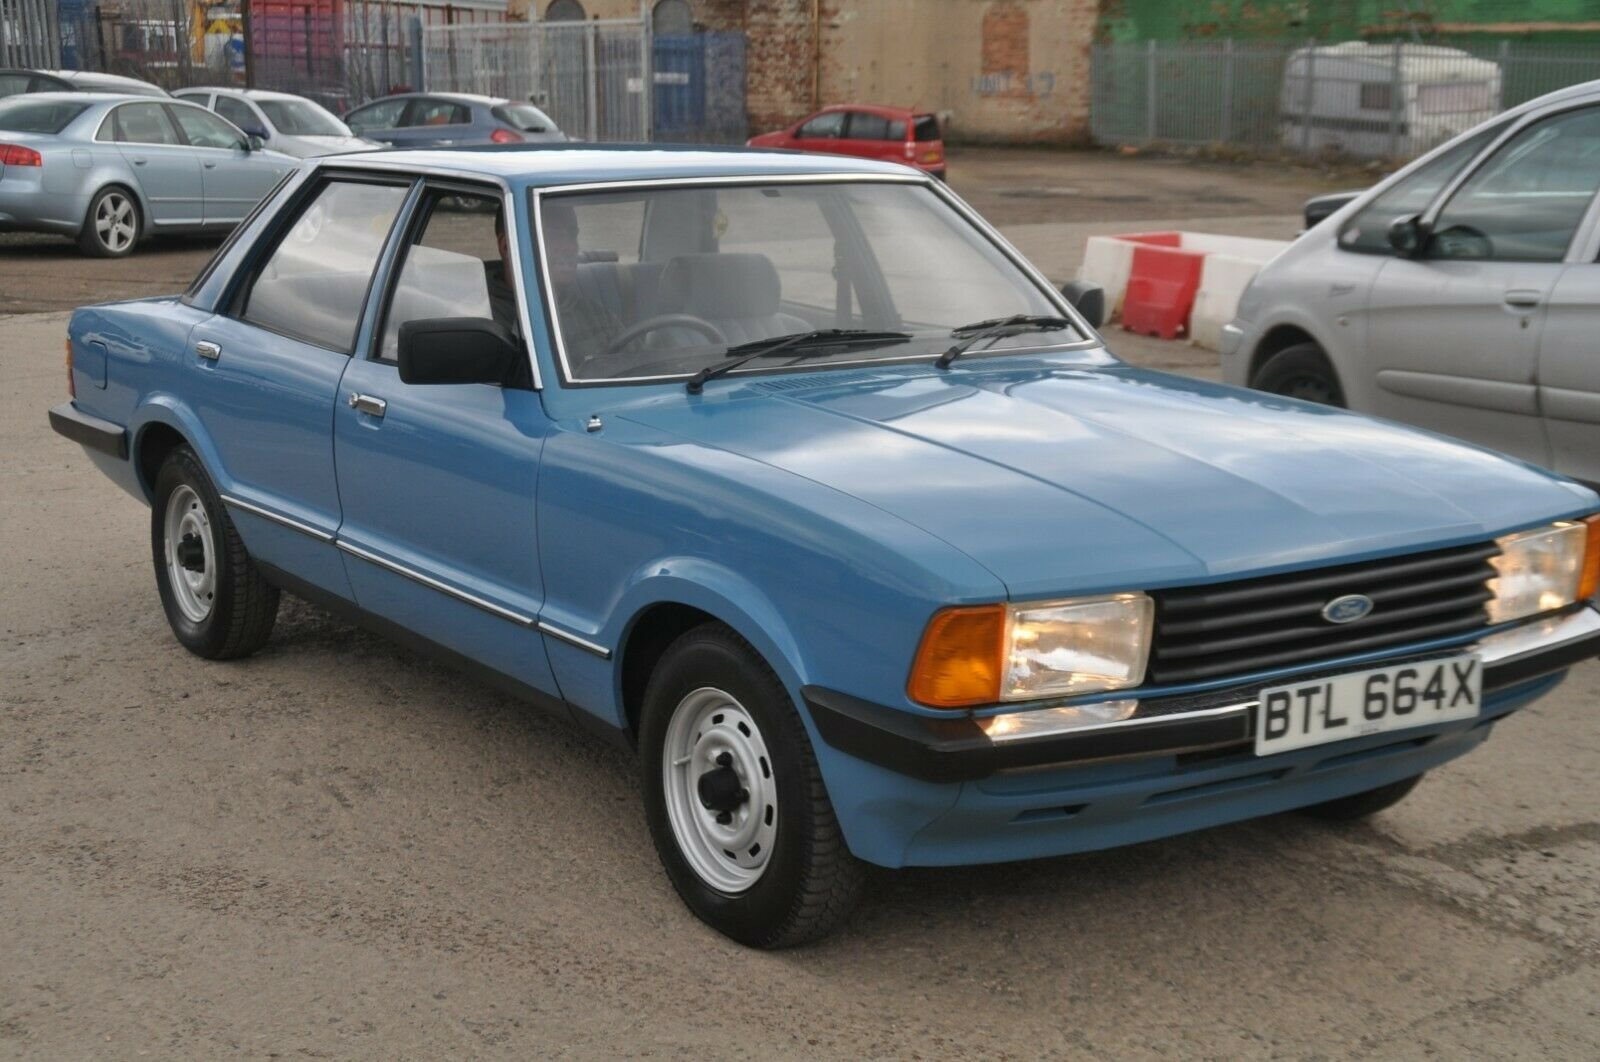 1981 FORD CORTINA L MK5 LOW MILES  For Sale (picture 2 of 6)